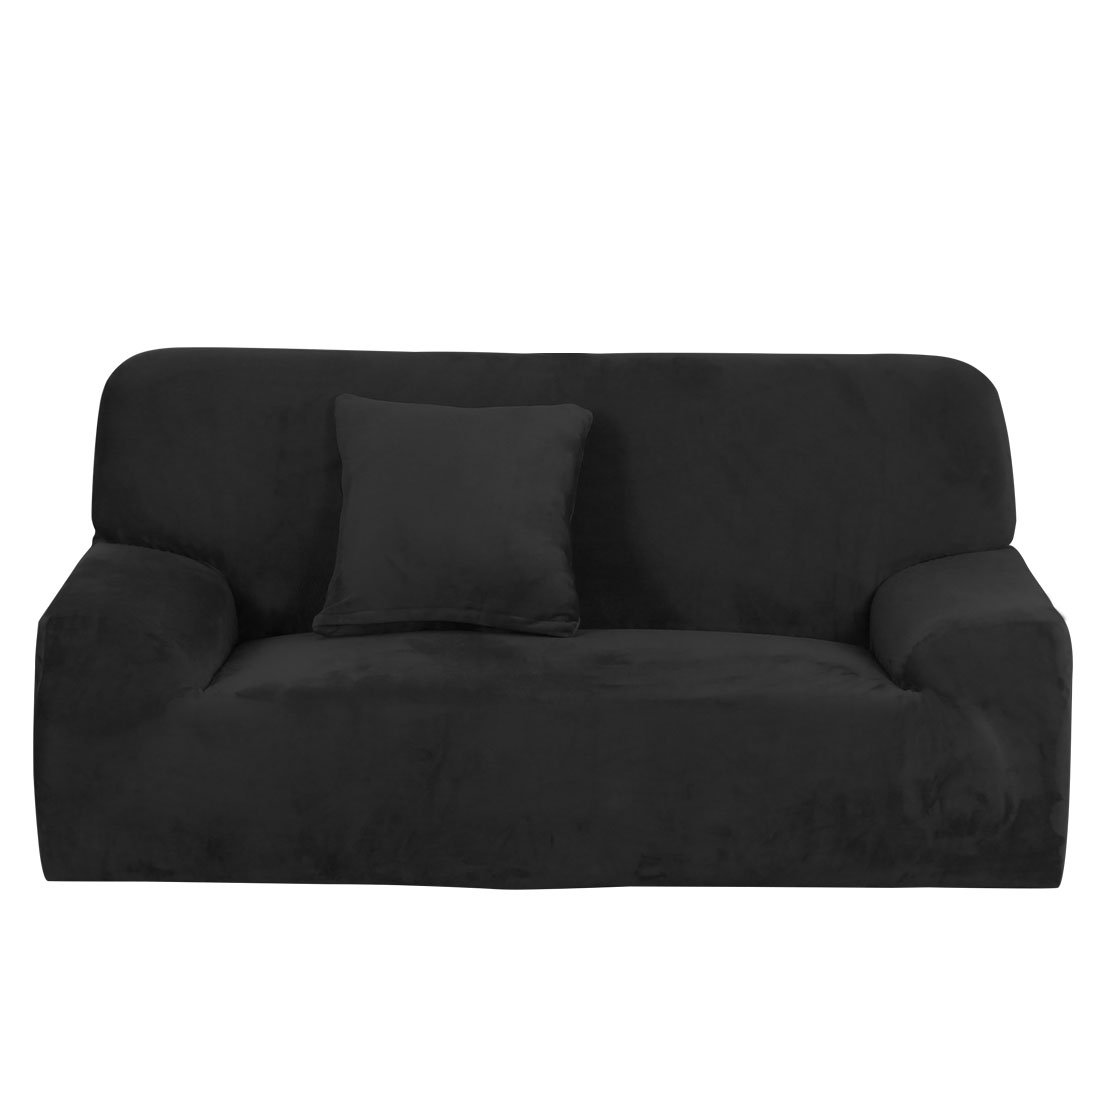 uxcell Velvet Plush Sofa Cover Loveseat Couch Slipcover, Machine Washable, Stylish Furniture Protector Covers with One Cushion Case (2 Seater, Black)